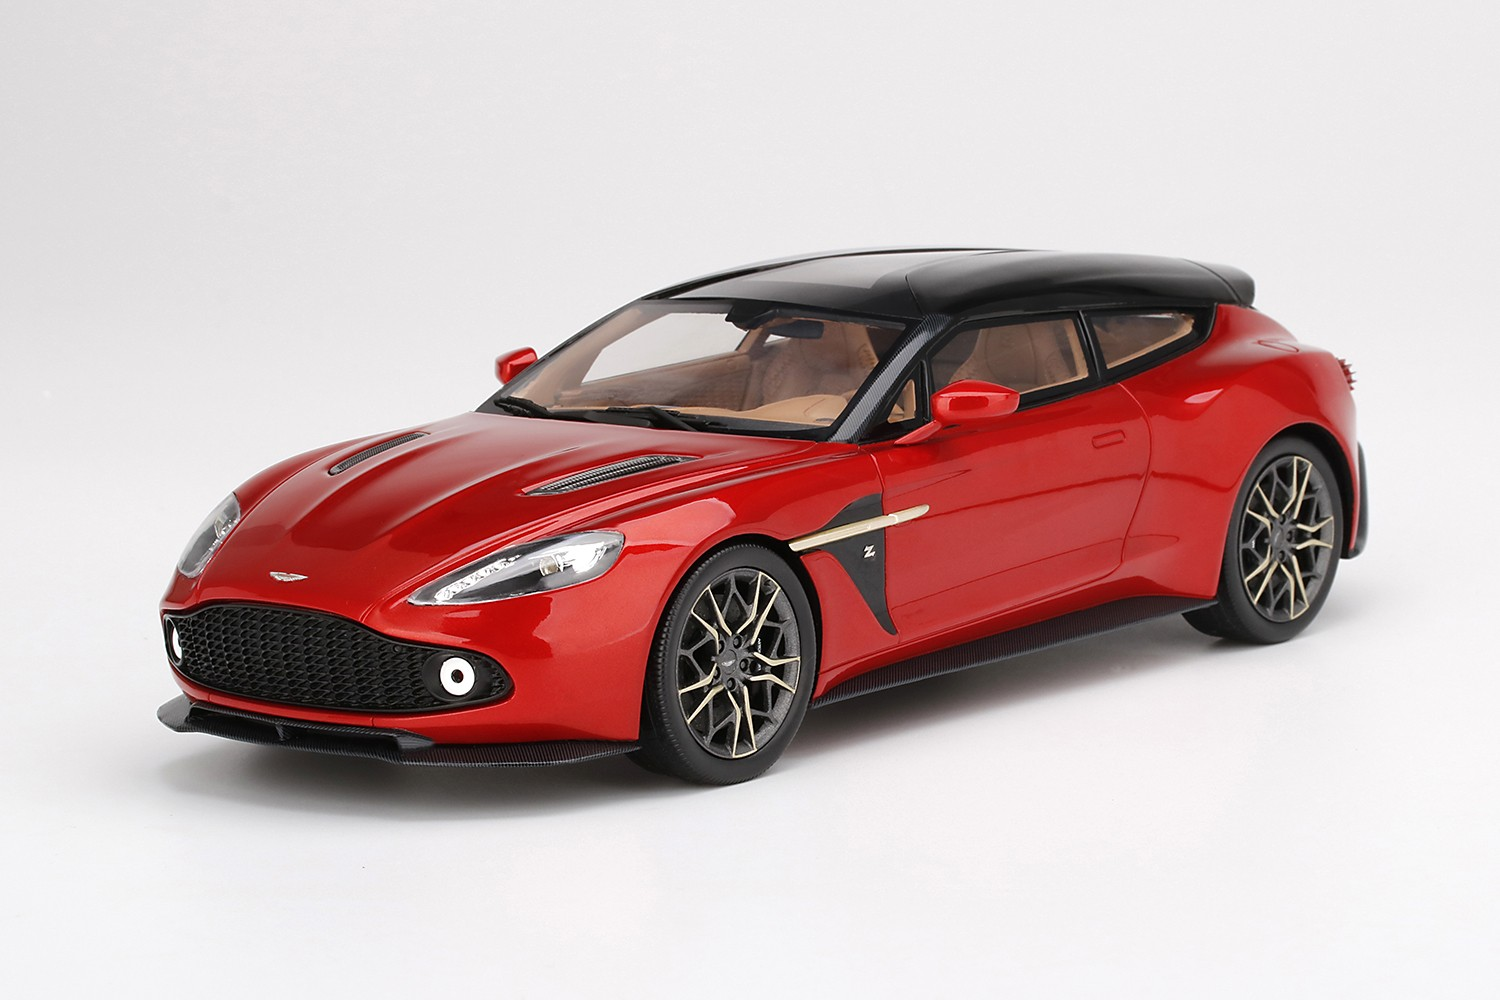 Aston Martin Vanquish Zagato Shooting Brake Lava Red Truescale Ts0218 Miniatures Minichamps